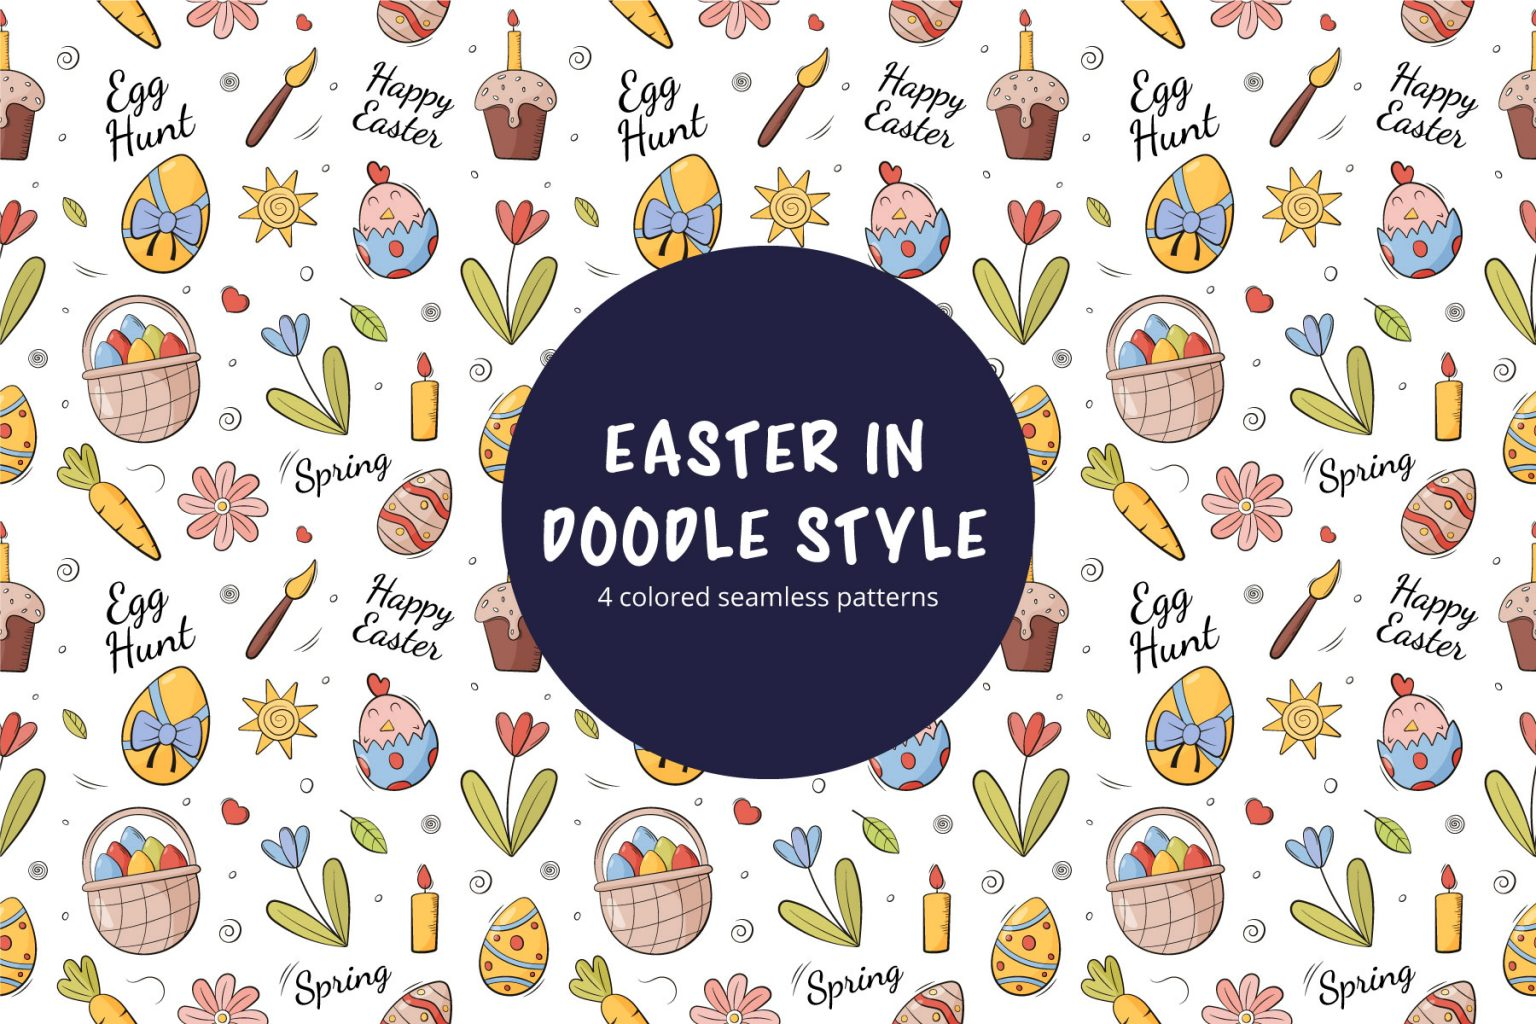 Happy Easter Doodle Style Vector Free Seamless Pattern